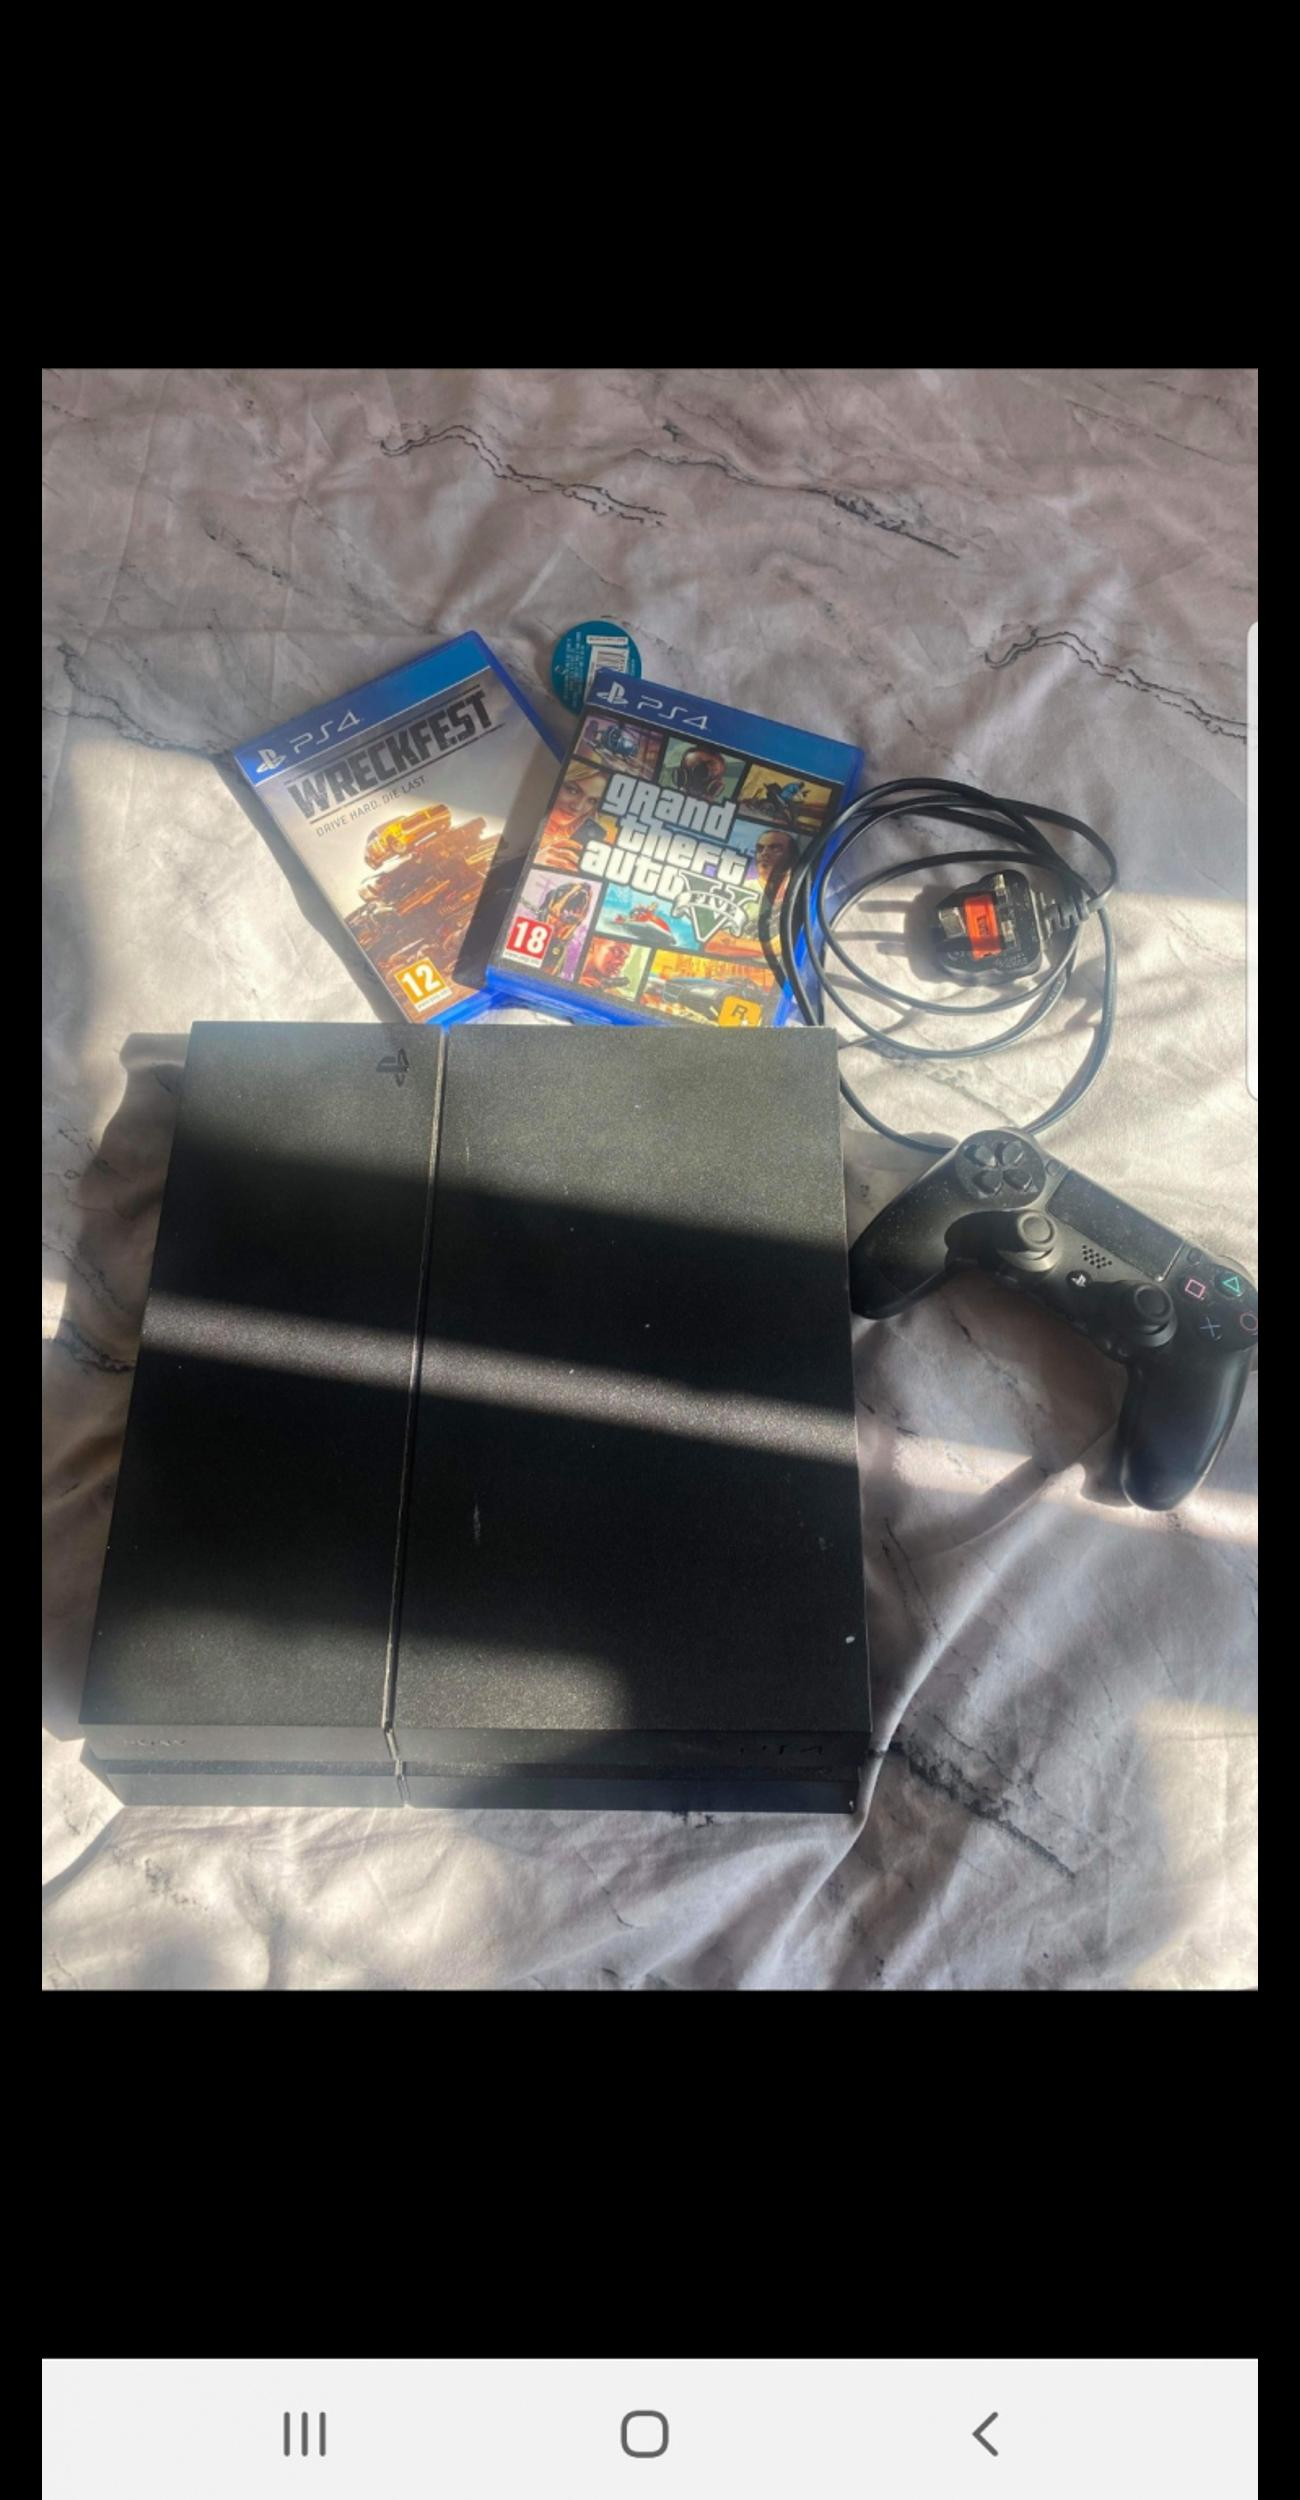 immaculate condition selling due to it not being used comes with everything shown in pictures also the box delivery avaliable, open to sensible offers